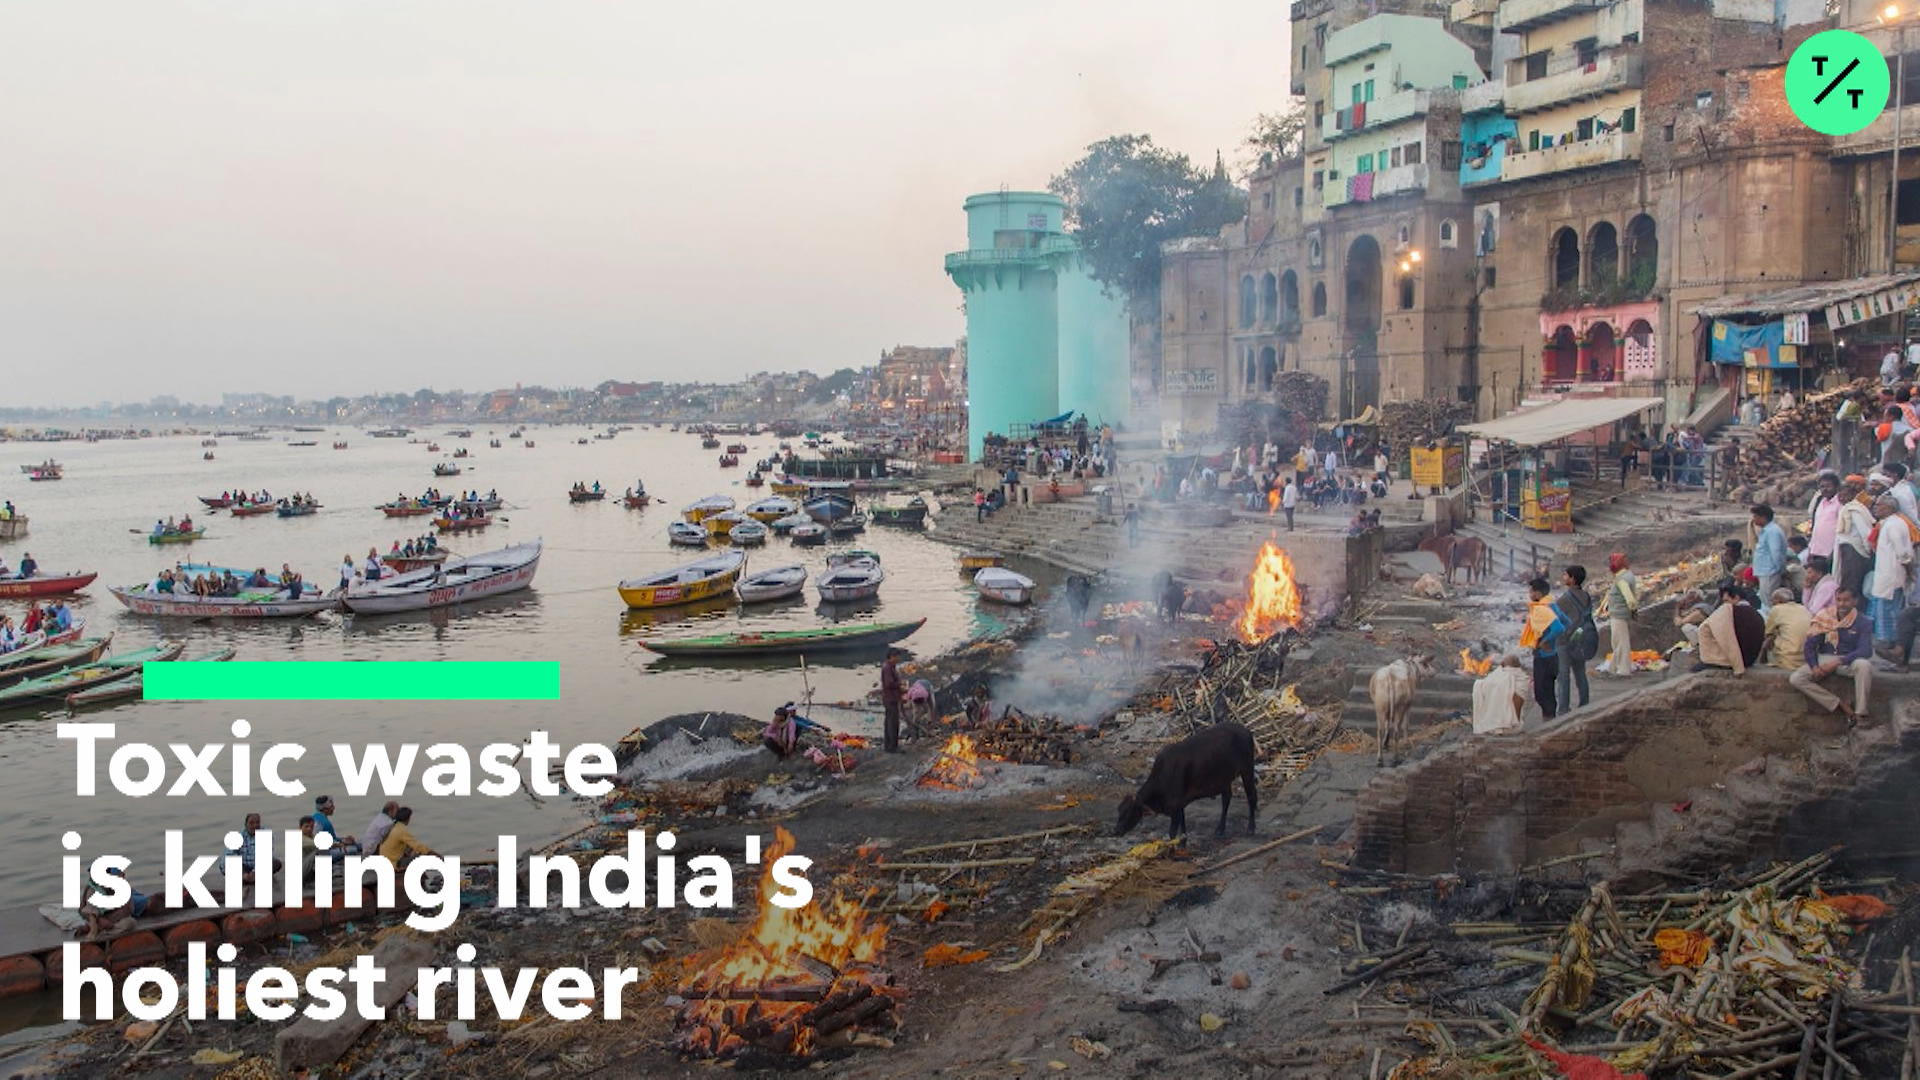 Toxic Waste is Killing India's Ganges